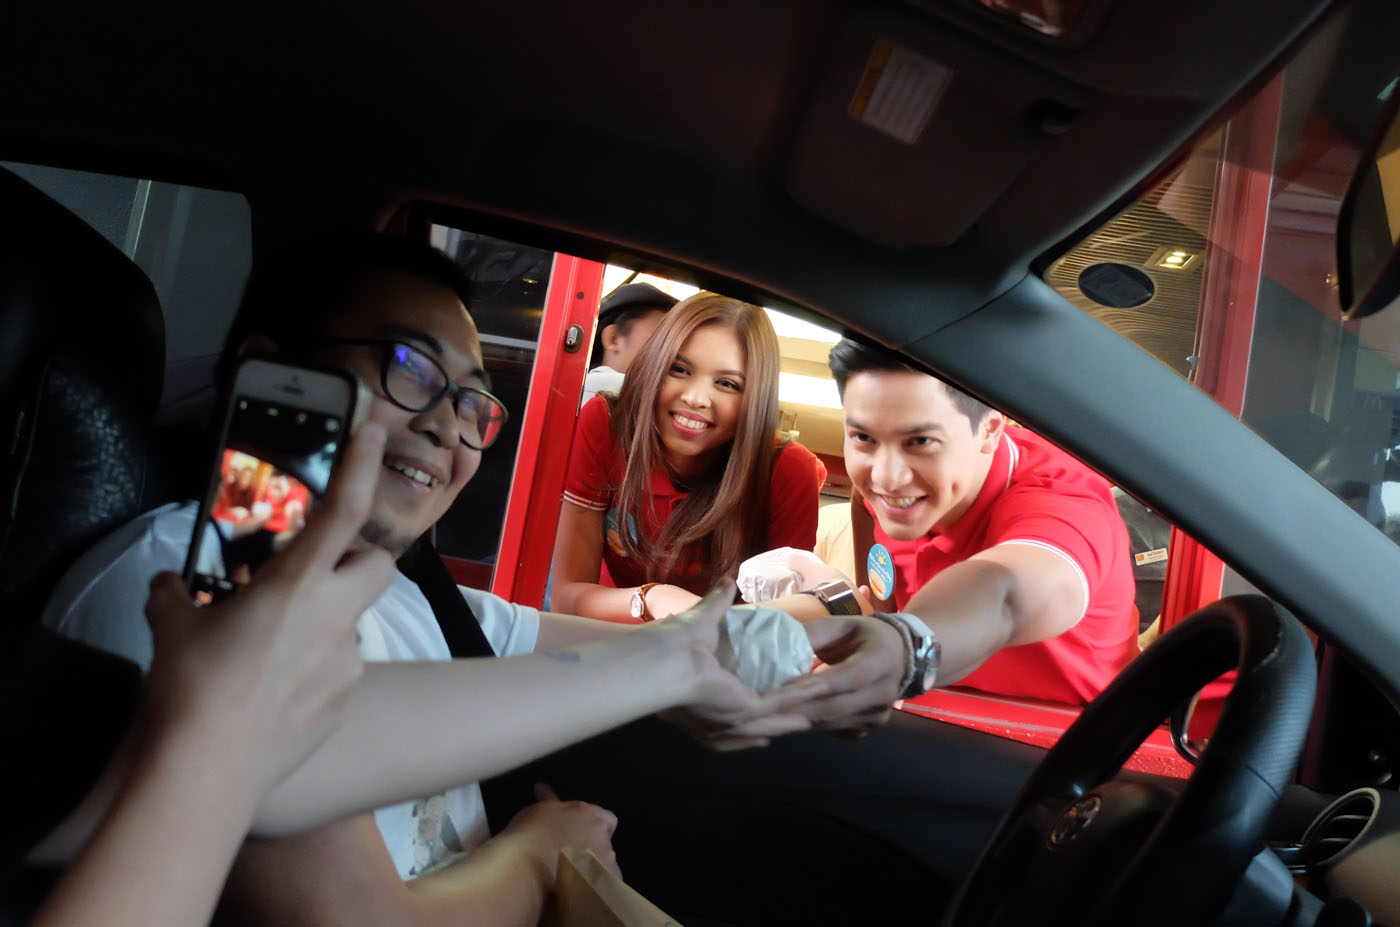 ALDUB. Alden and Maine surprising drive-thru customers in BlueBay Walk